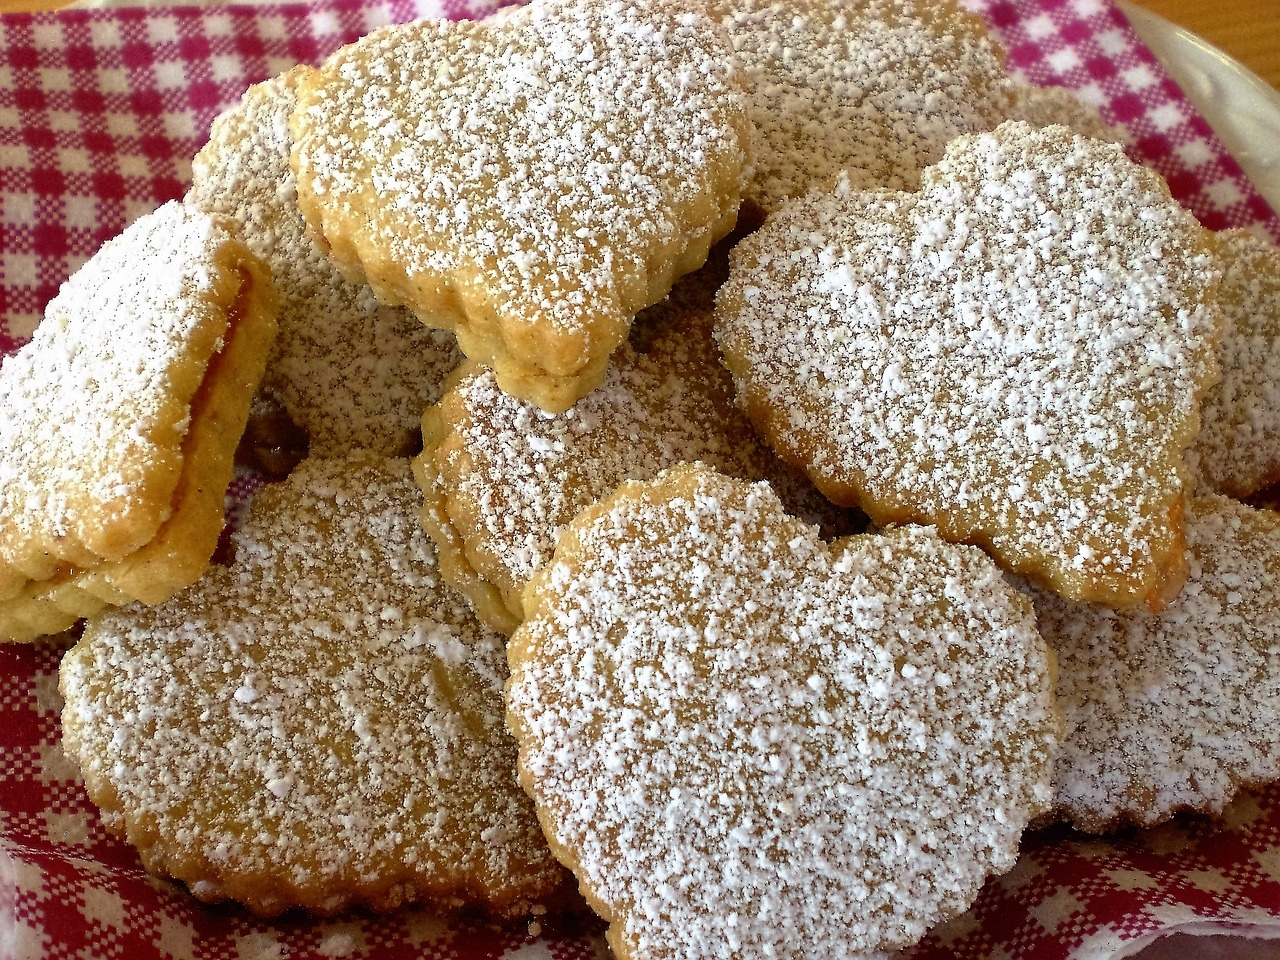 Make-Your-Sugar-Healthy-With-This-Yummy-Sugar-Cookies-Recipe